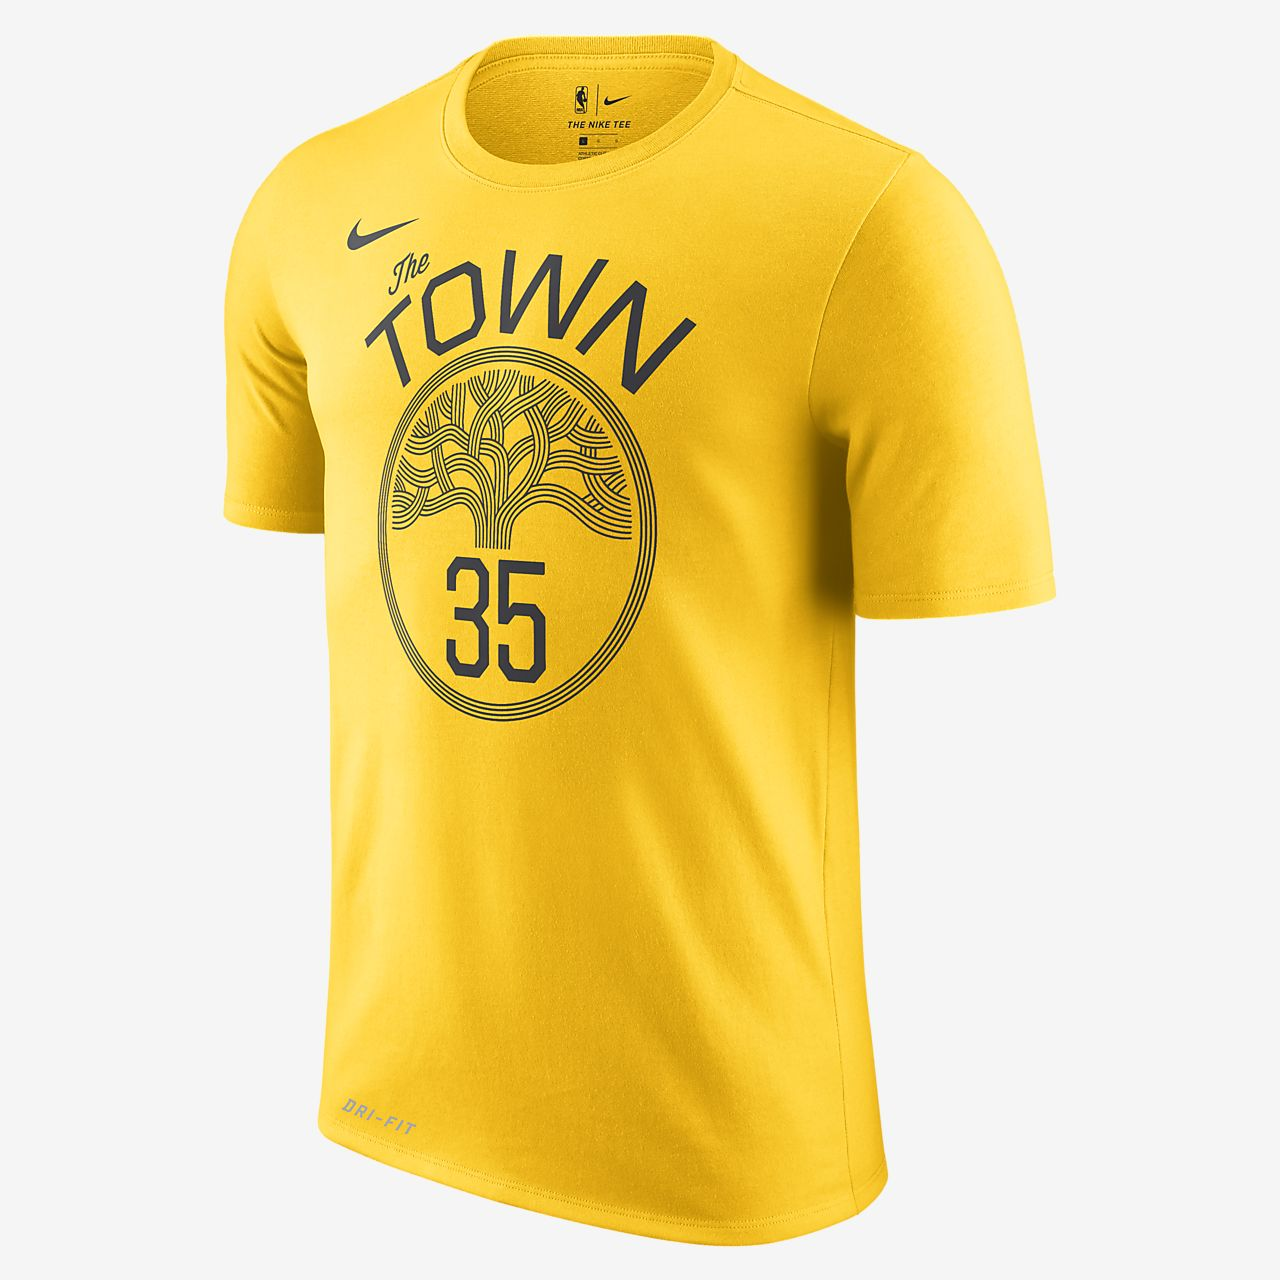 92f3e2c9 Men's NBA T-Shirt. Kevin Durant Golden State Warriors City Edition Nike Dri- FIT